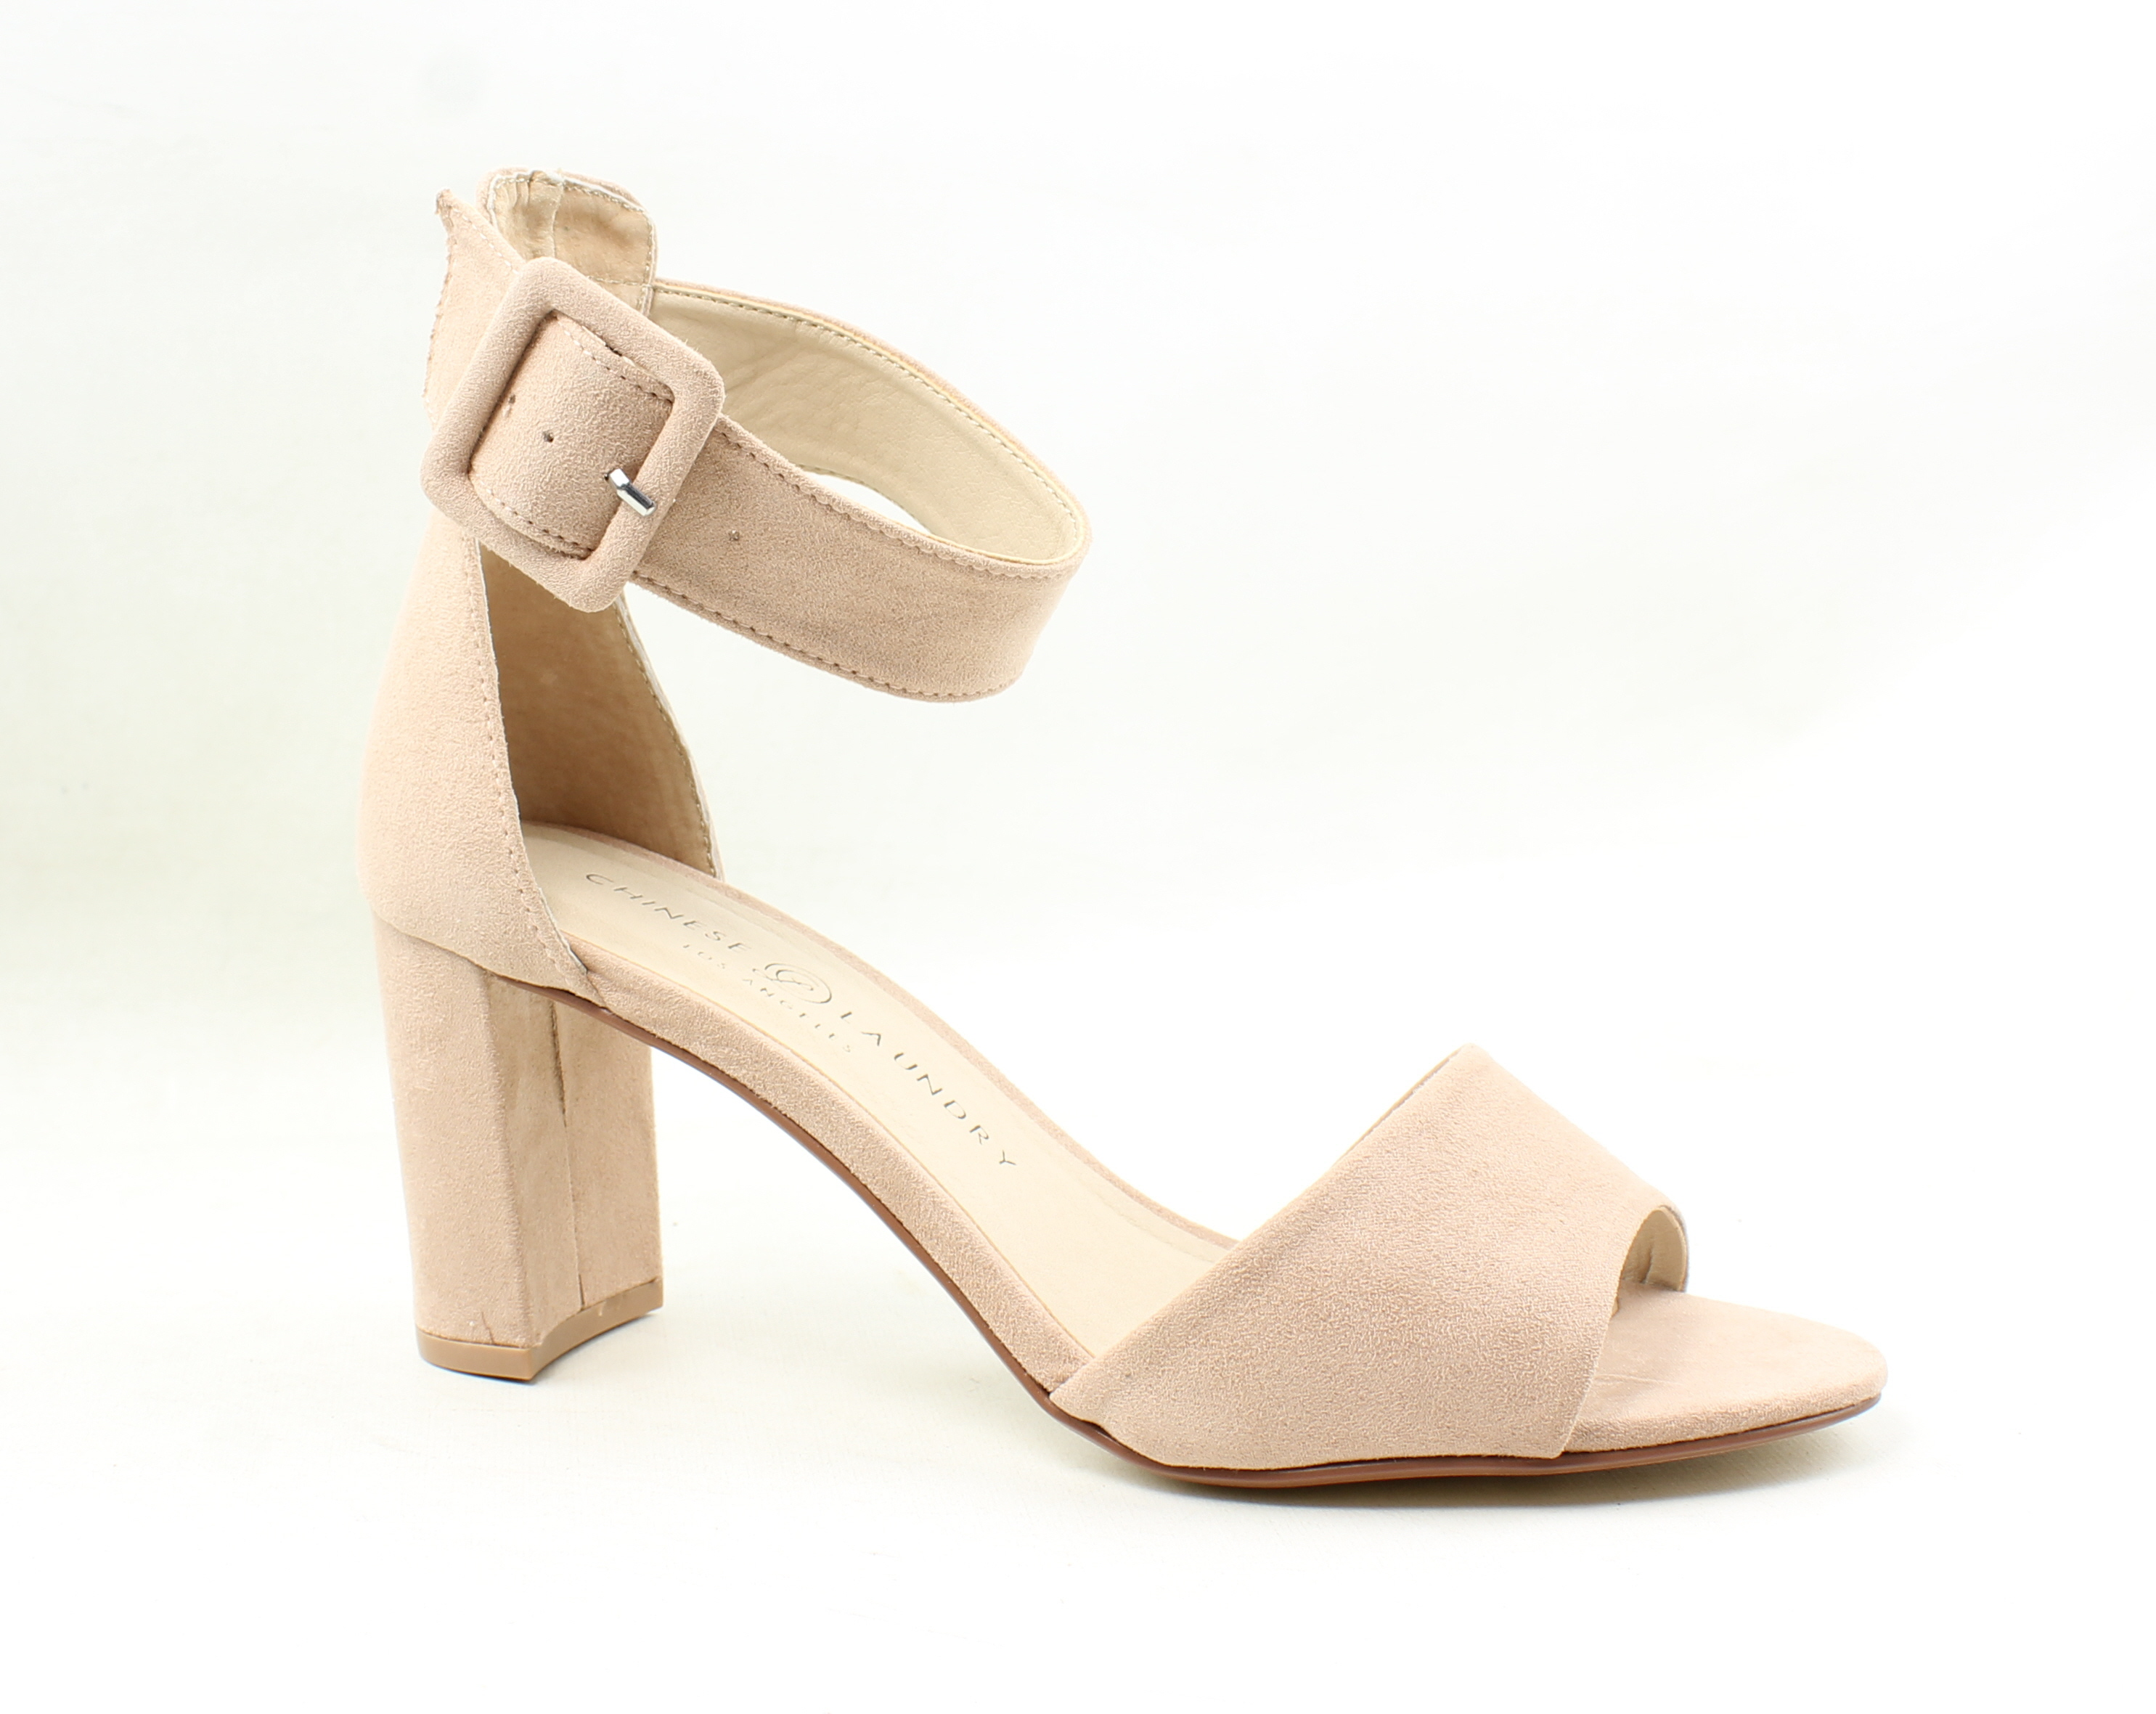 Chinese Laundry Womens Rosita Dark Nude Suede Ankle Strap